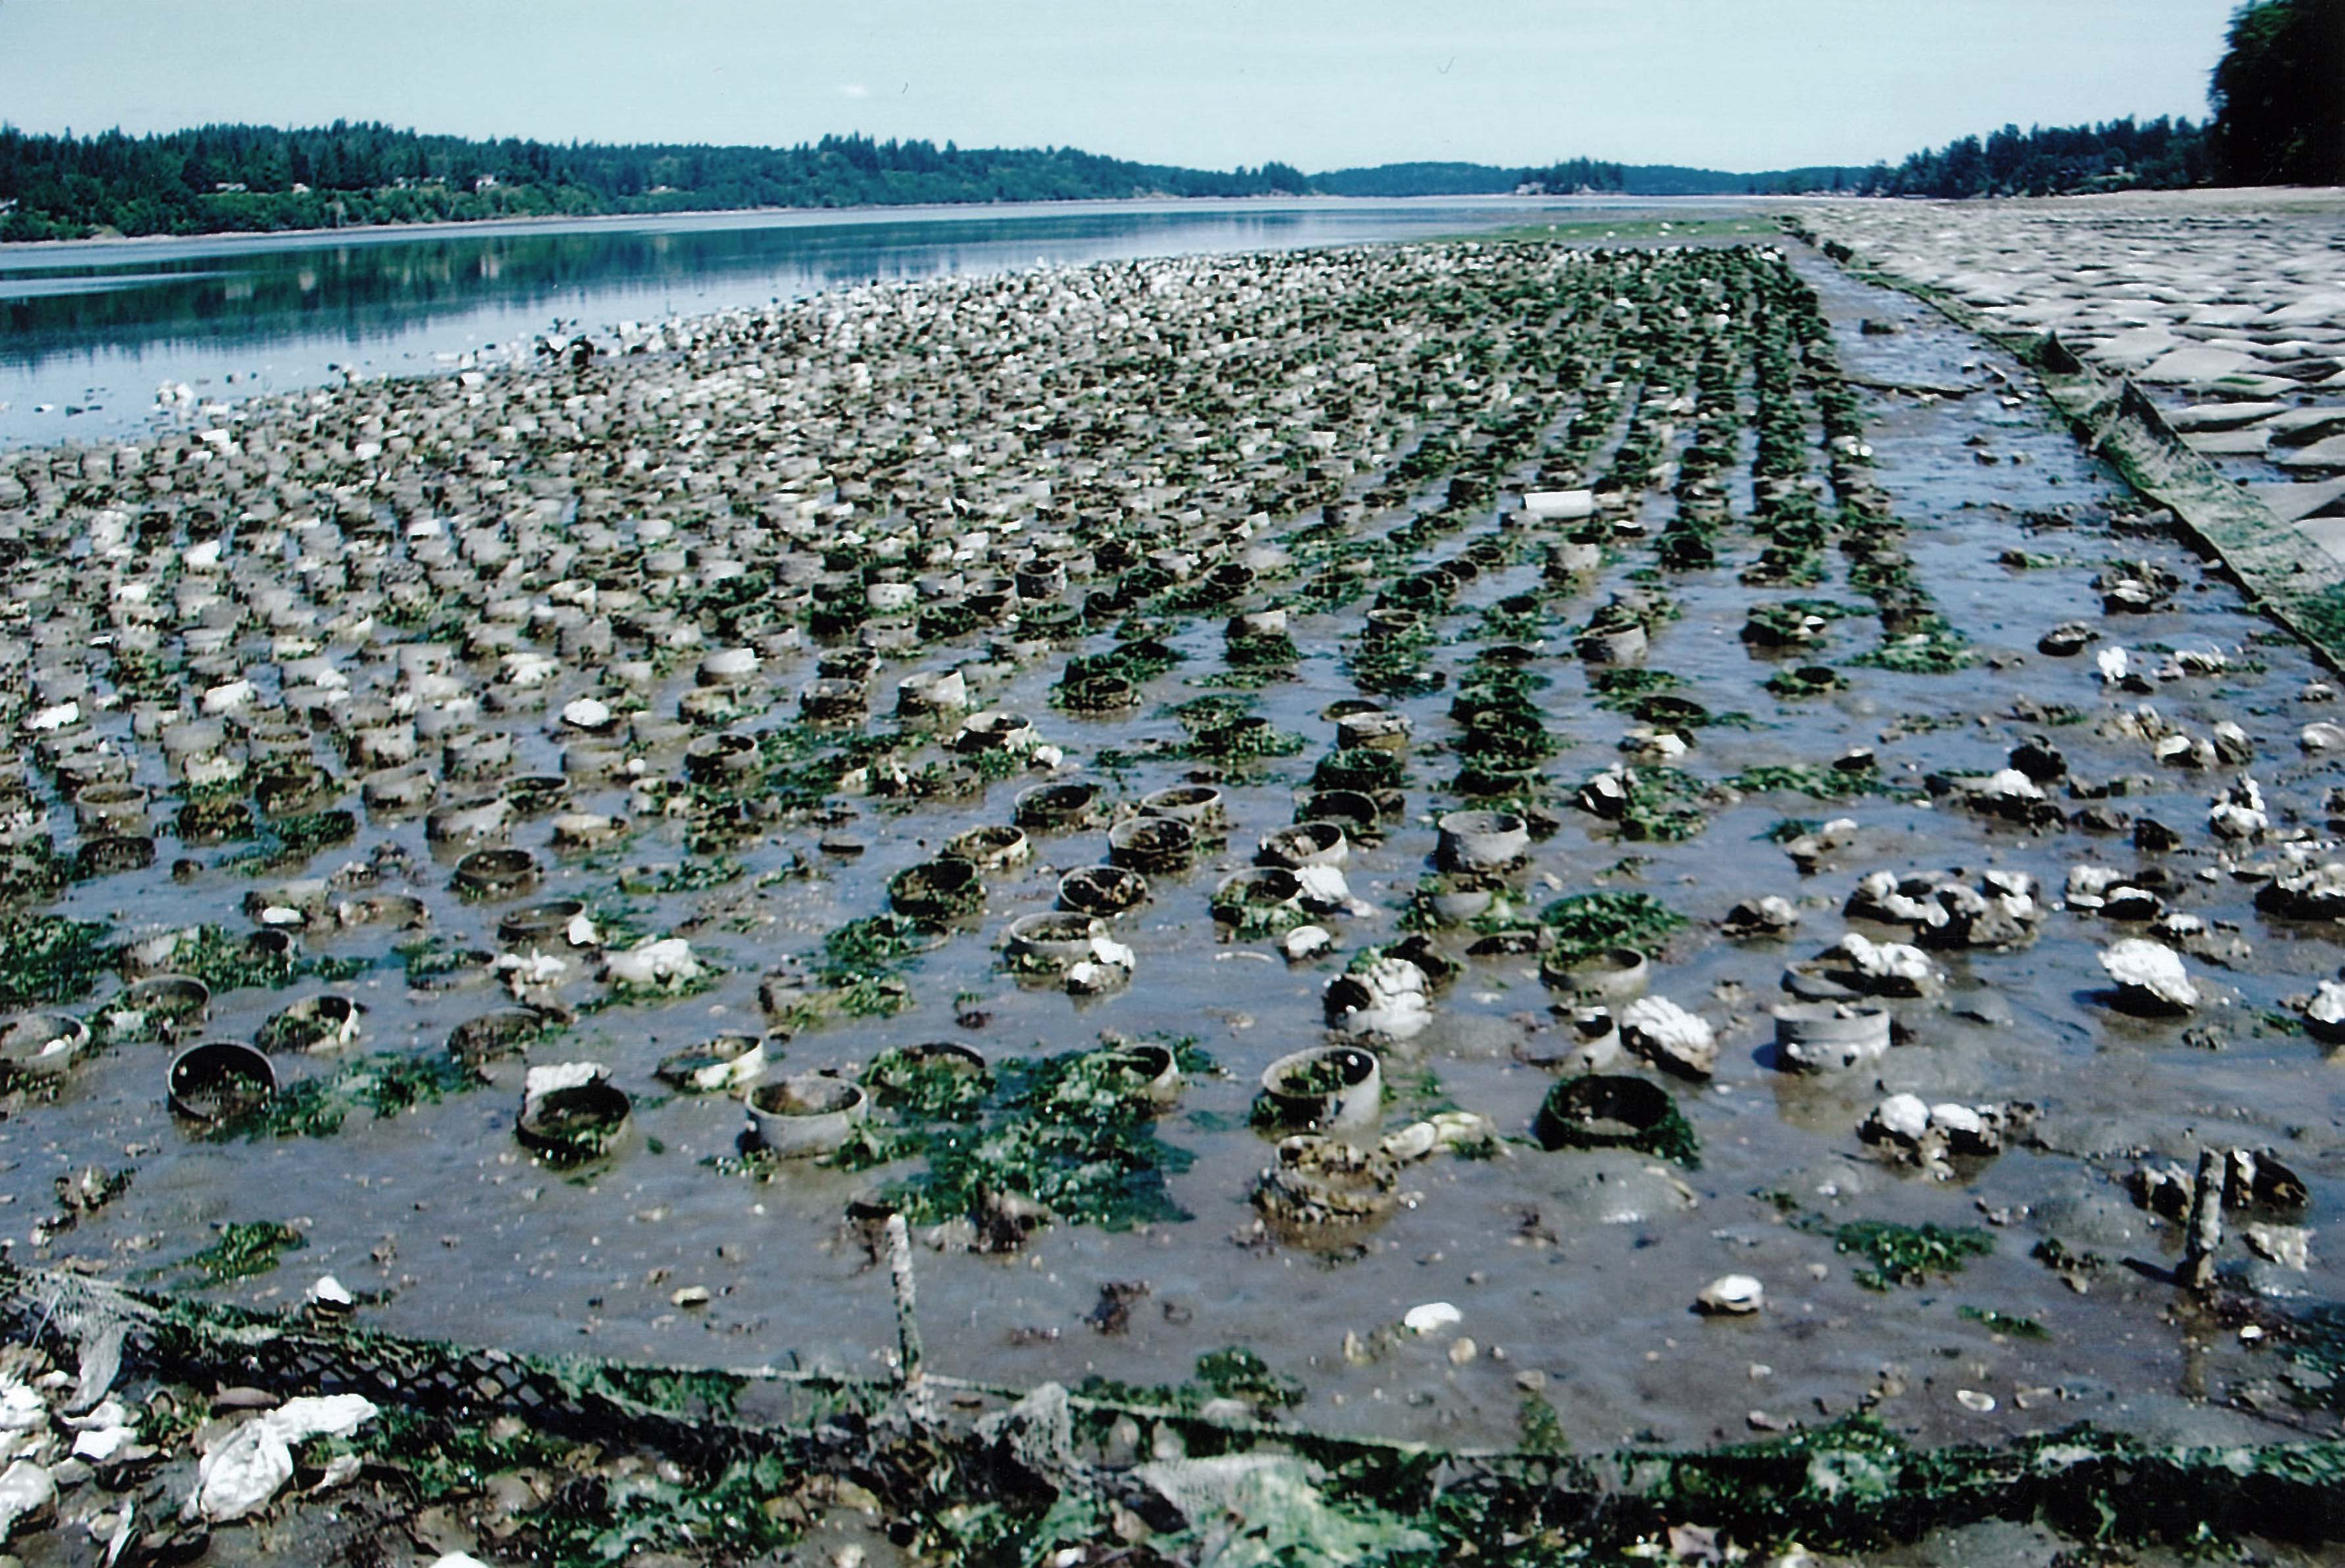 Protect Our Shoreline